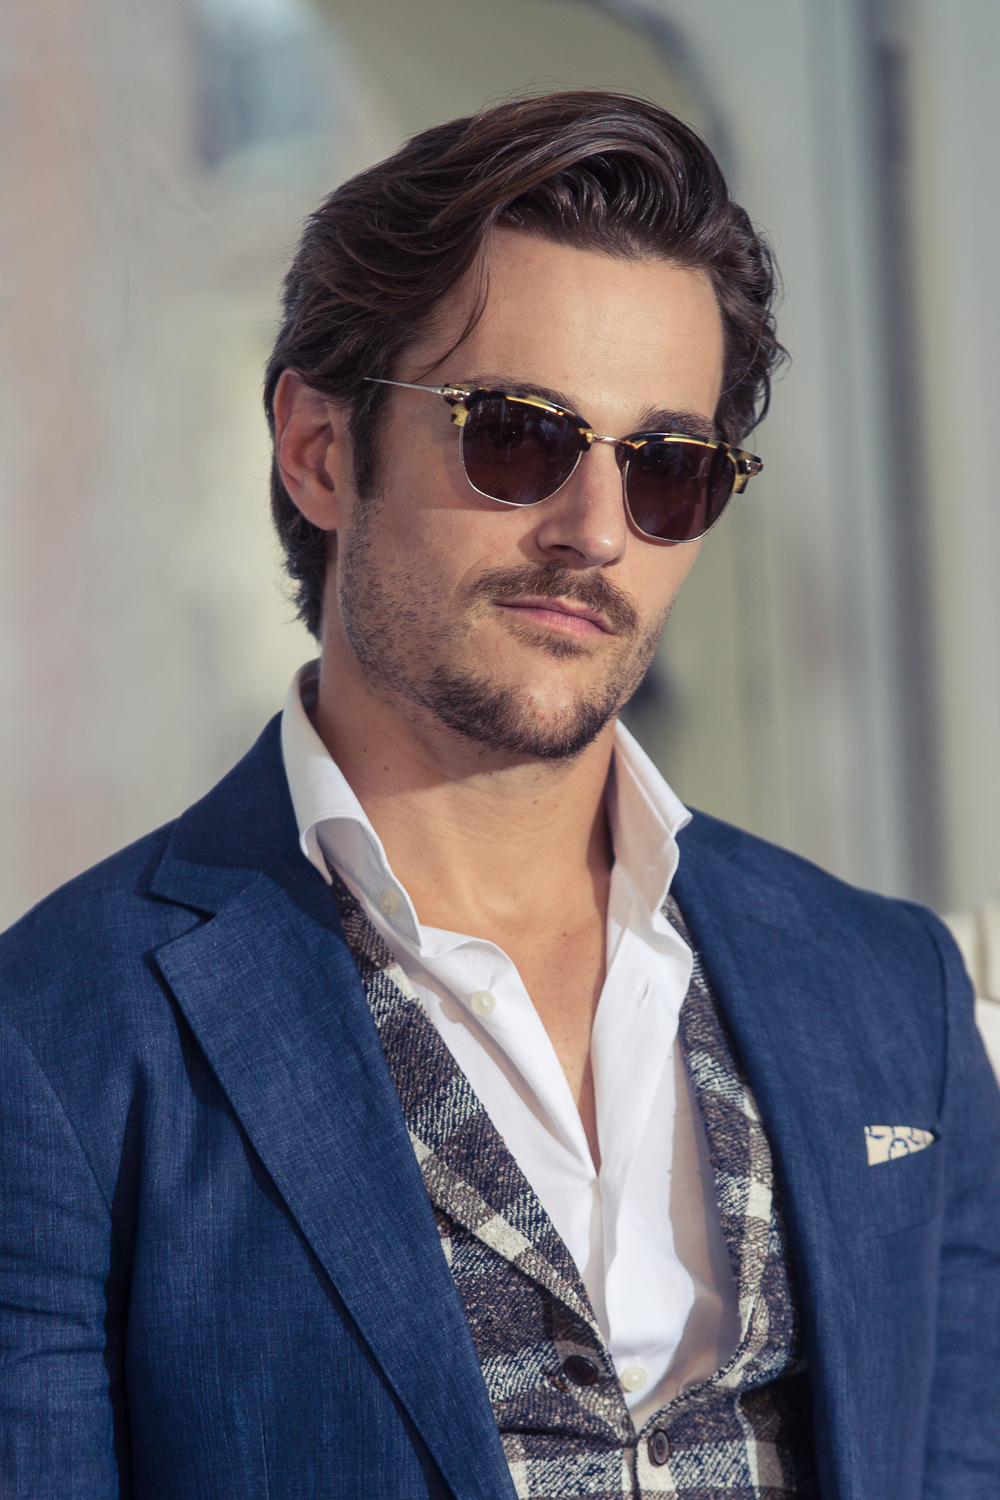 091-20160711 WillCadena.com Go247 SuitSupply.jpg